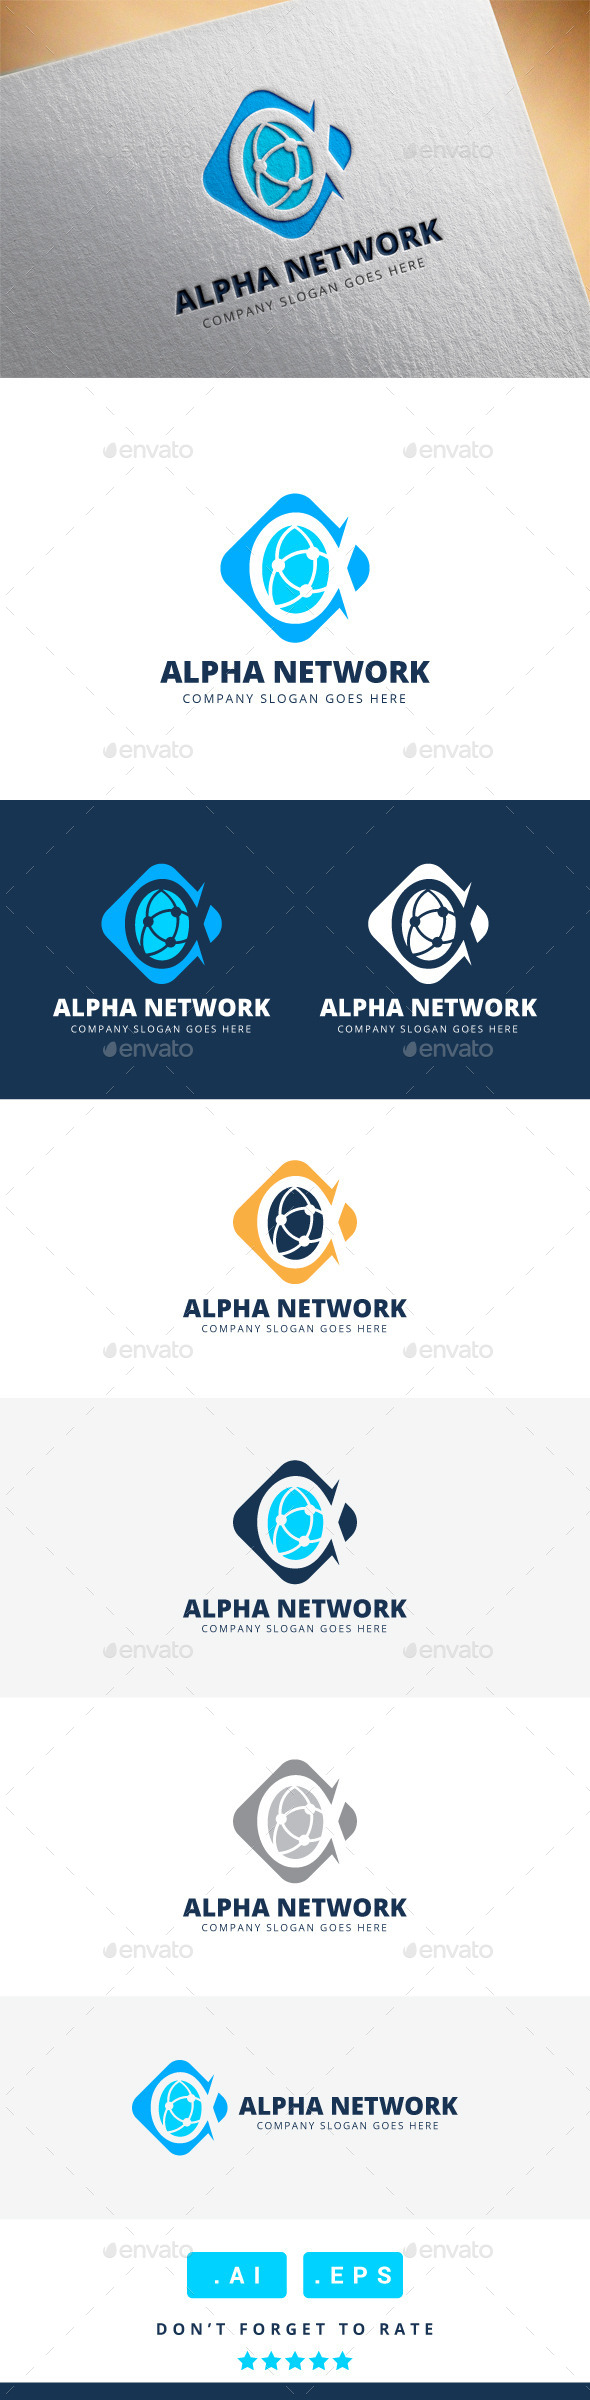 GraphicRiver Alpha Network Logo 11339182